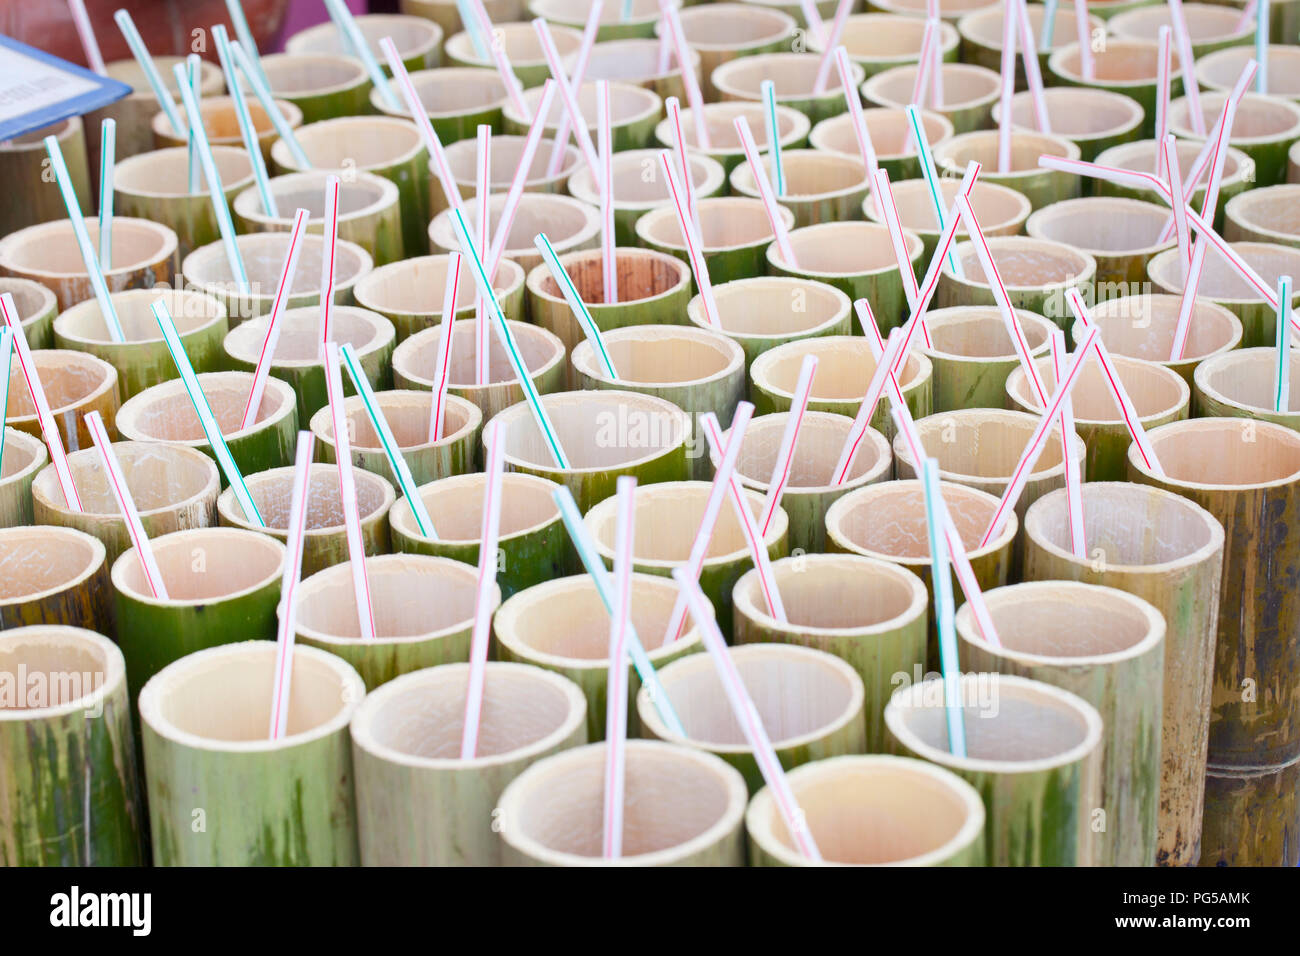 Bamboo cups waiting to be filled, Thailand - Stock Image